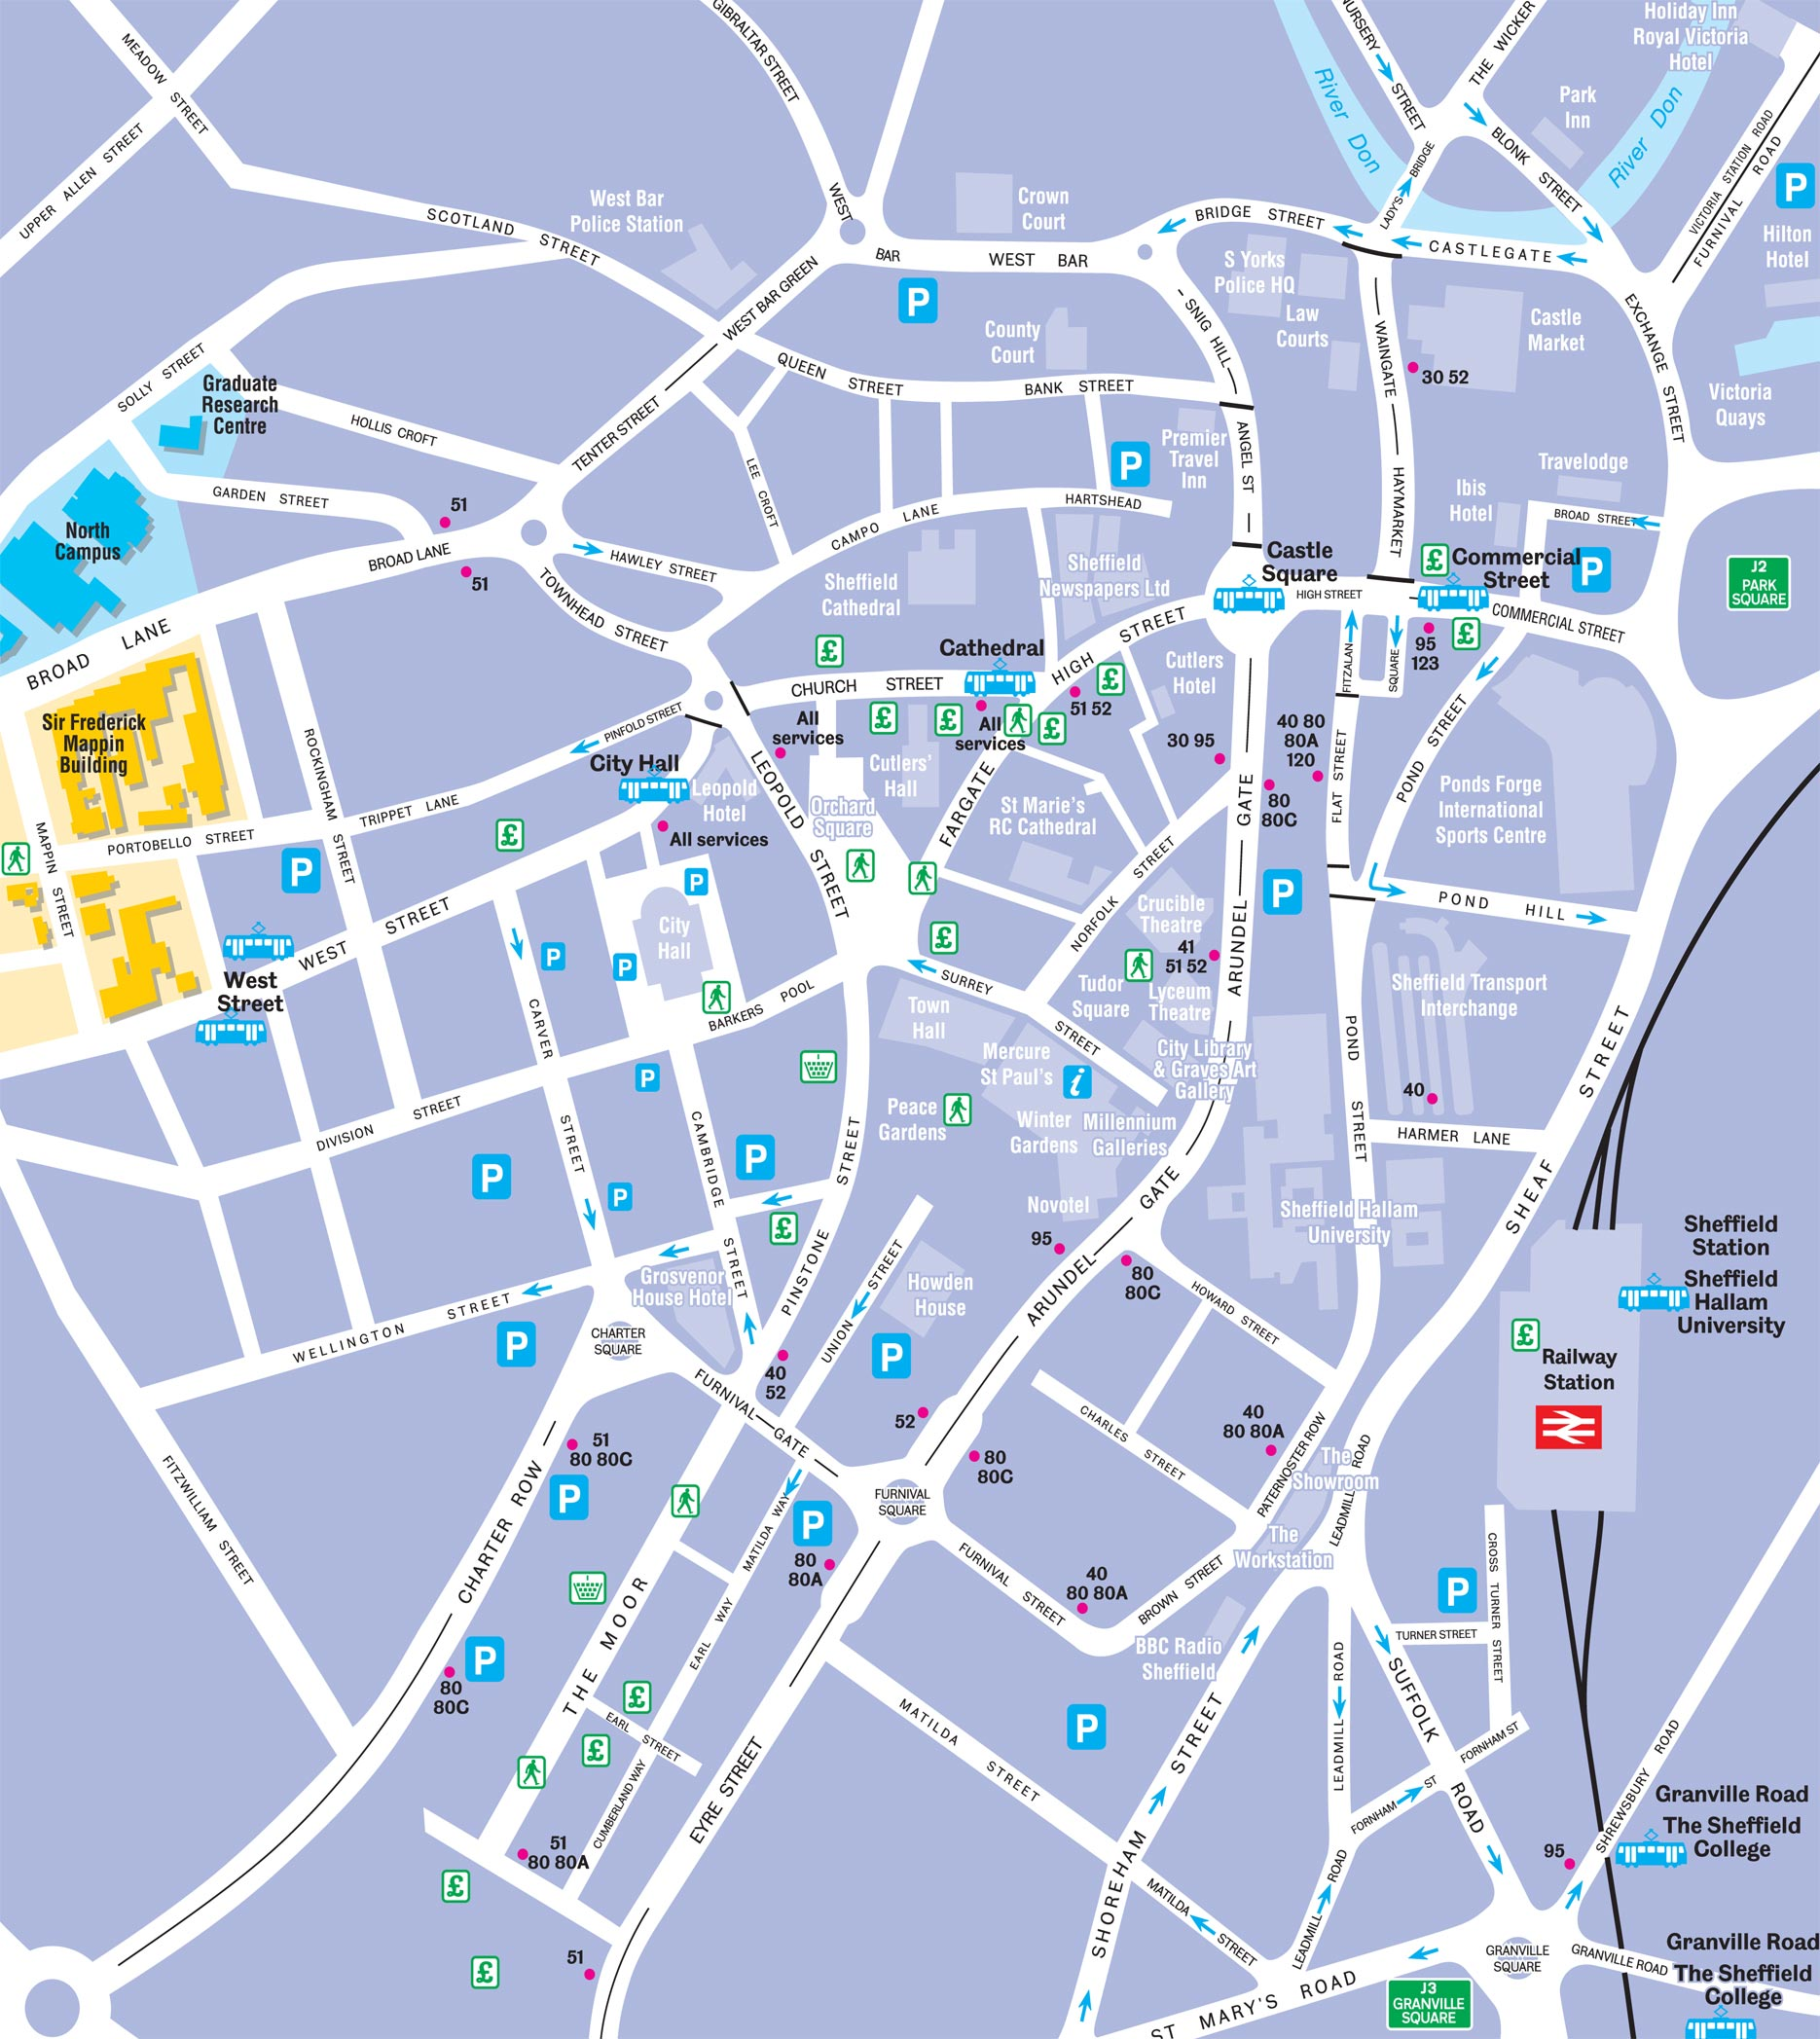 sheffield-map-aug-2010.gif